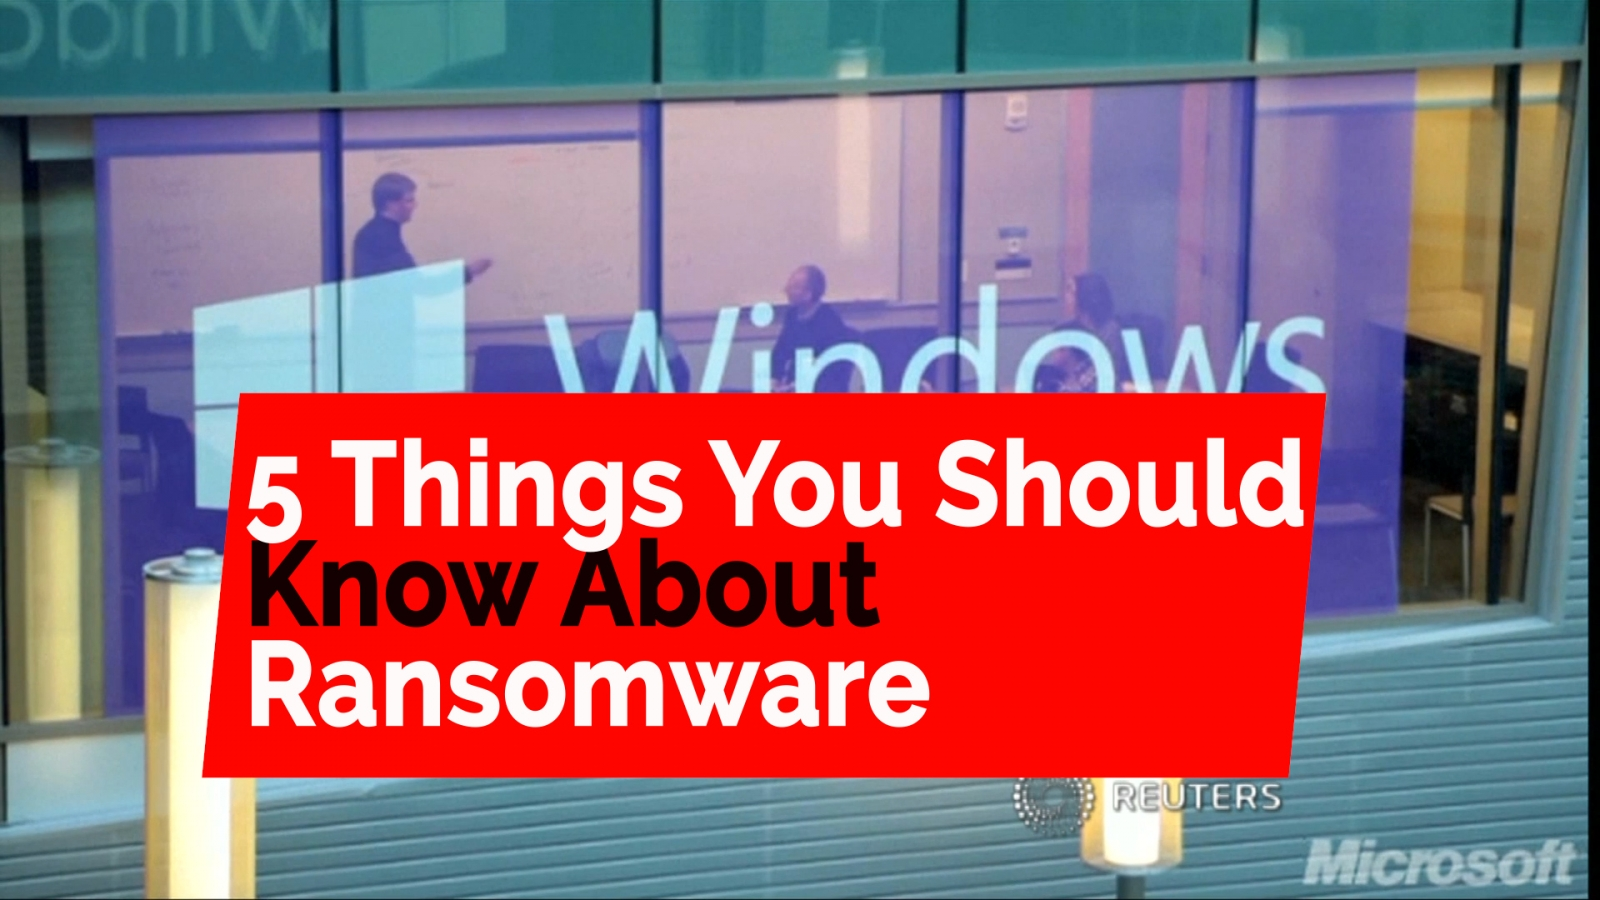 5-things-you-should-know-about-ransomware